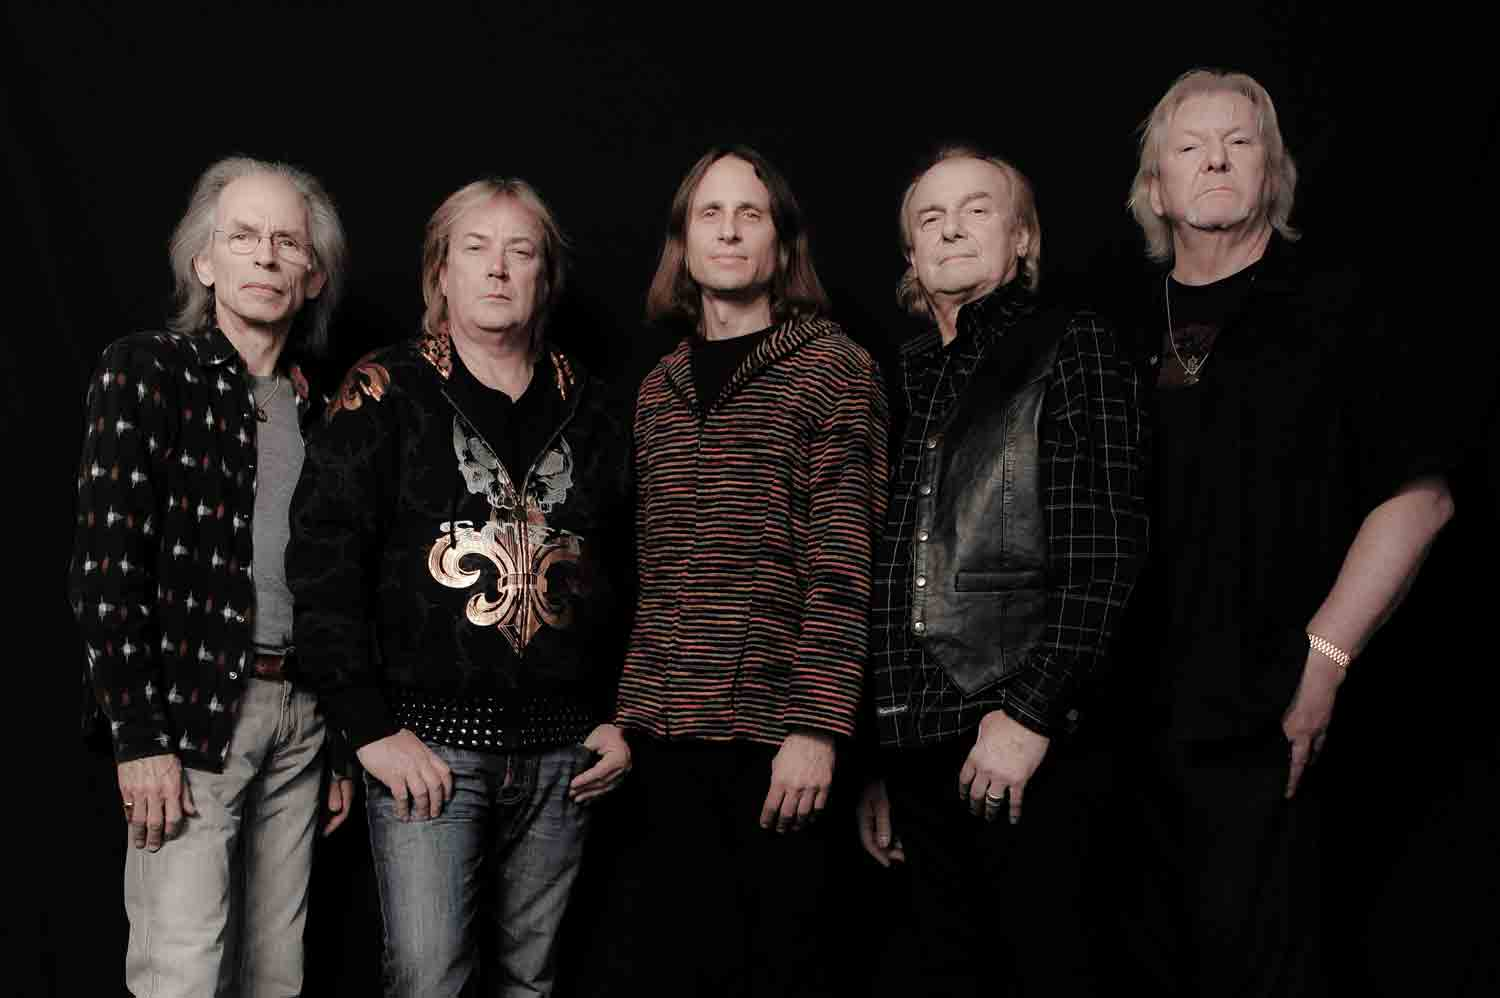 YES Adds Second Leg To Their Triple-Header Concert Tour